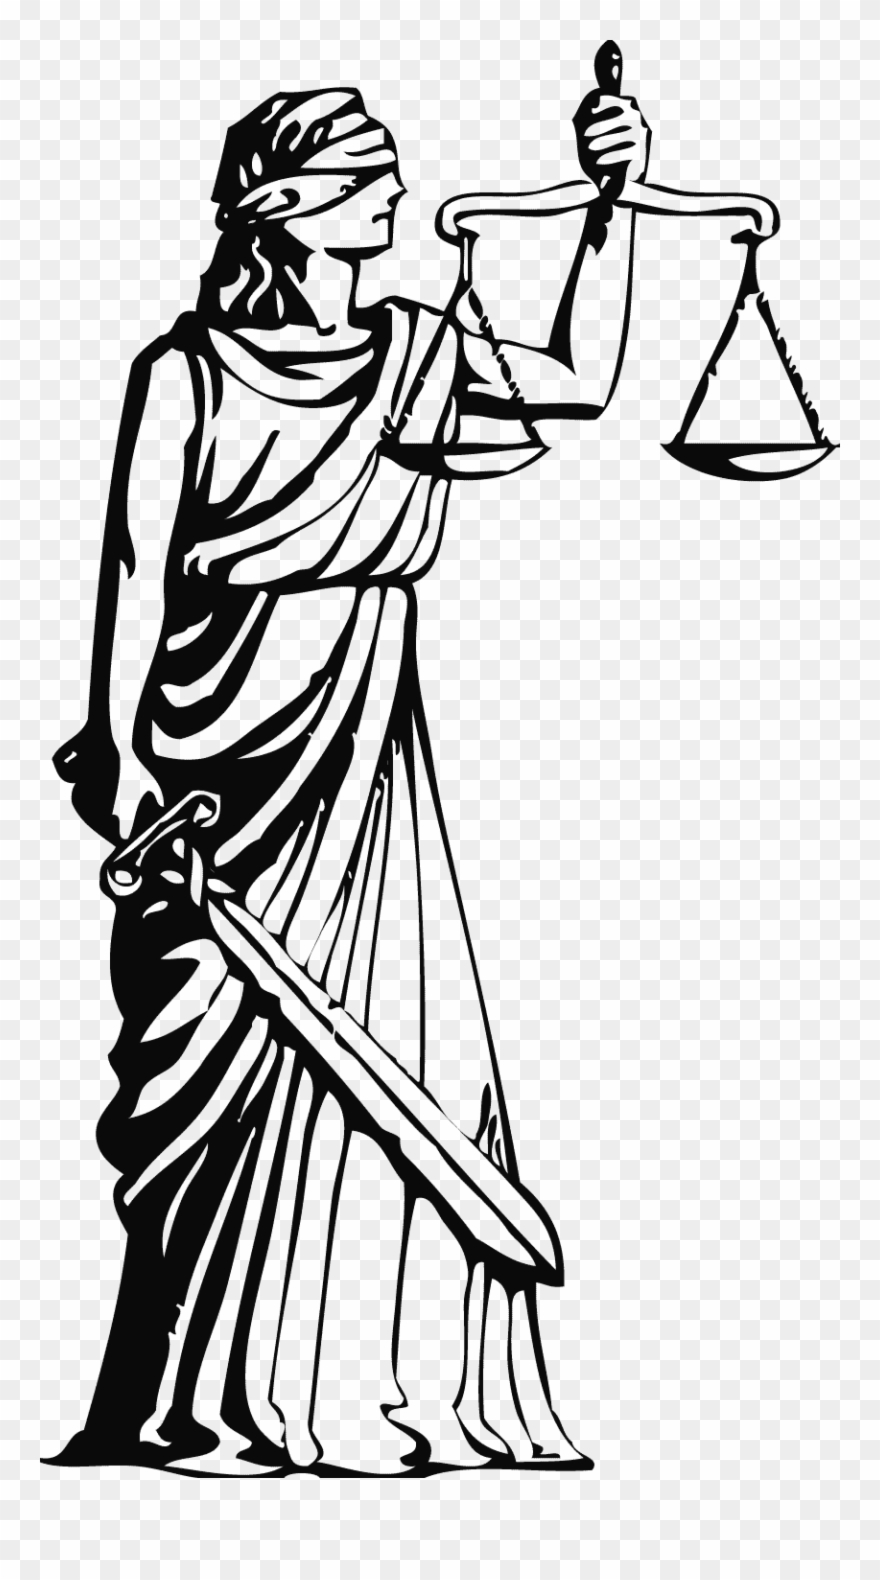 Constitution Clipart Black And White.